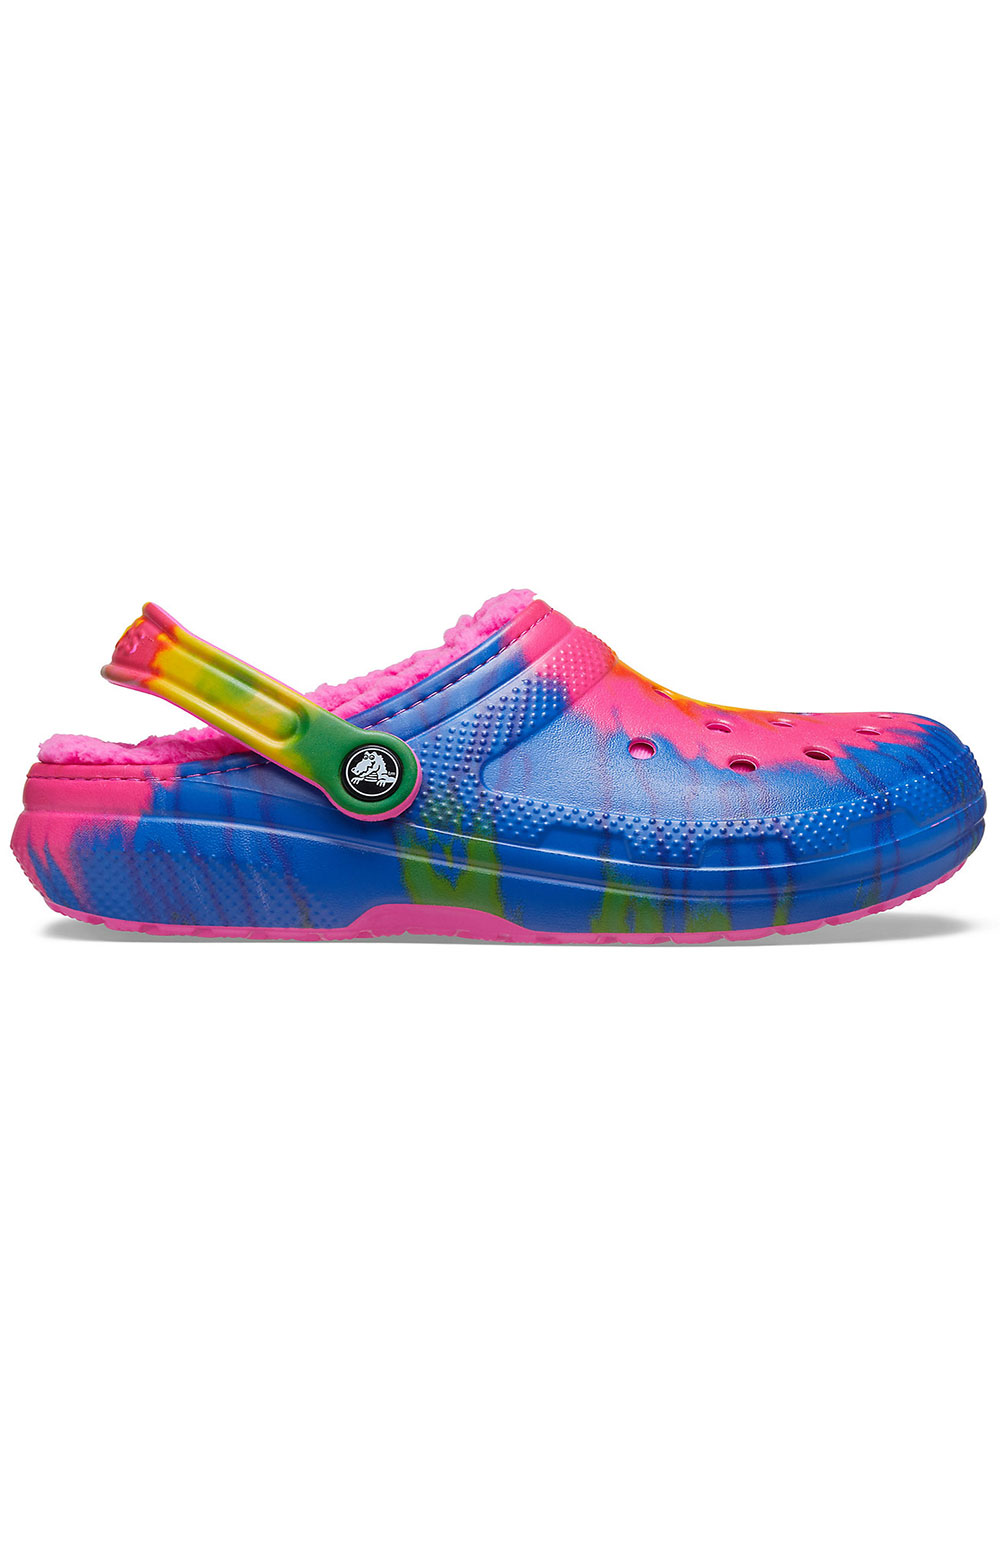 Classic Lined Tie-Dye Clogs - Electric Pink/Multi 2